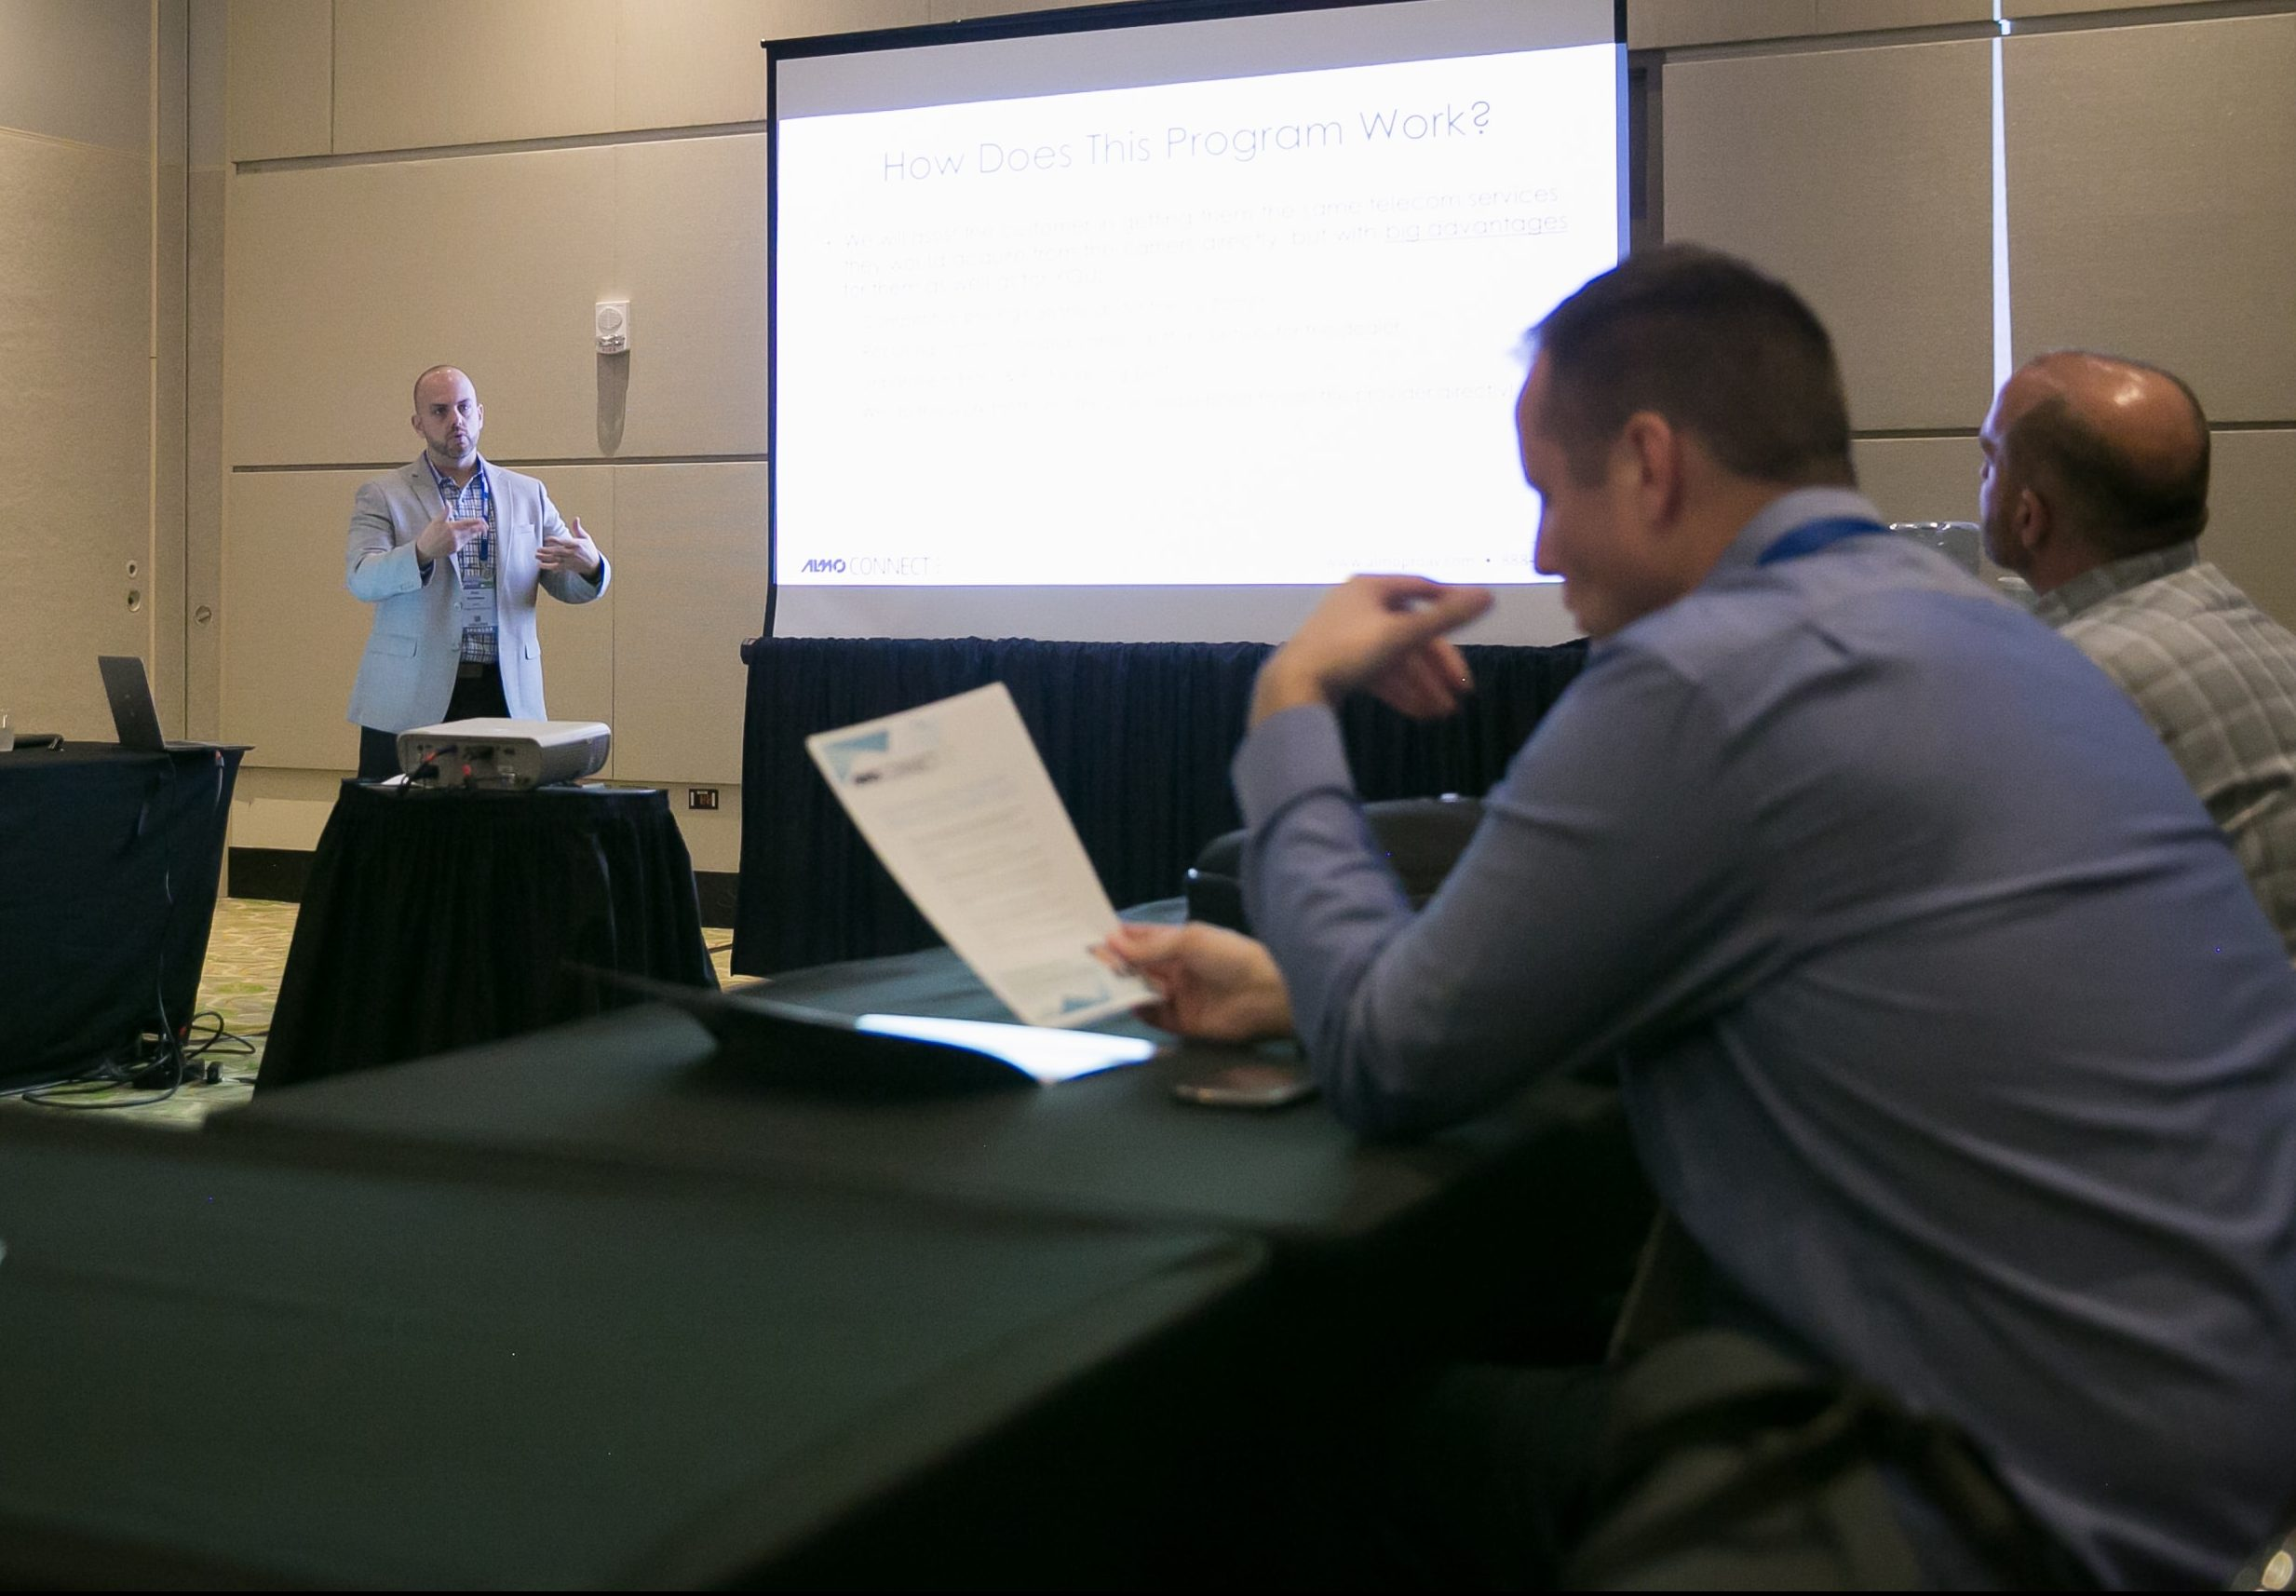 Rob Voorhees gives a presentation during a boardroom meeting.